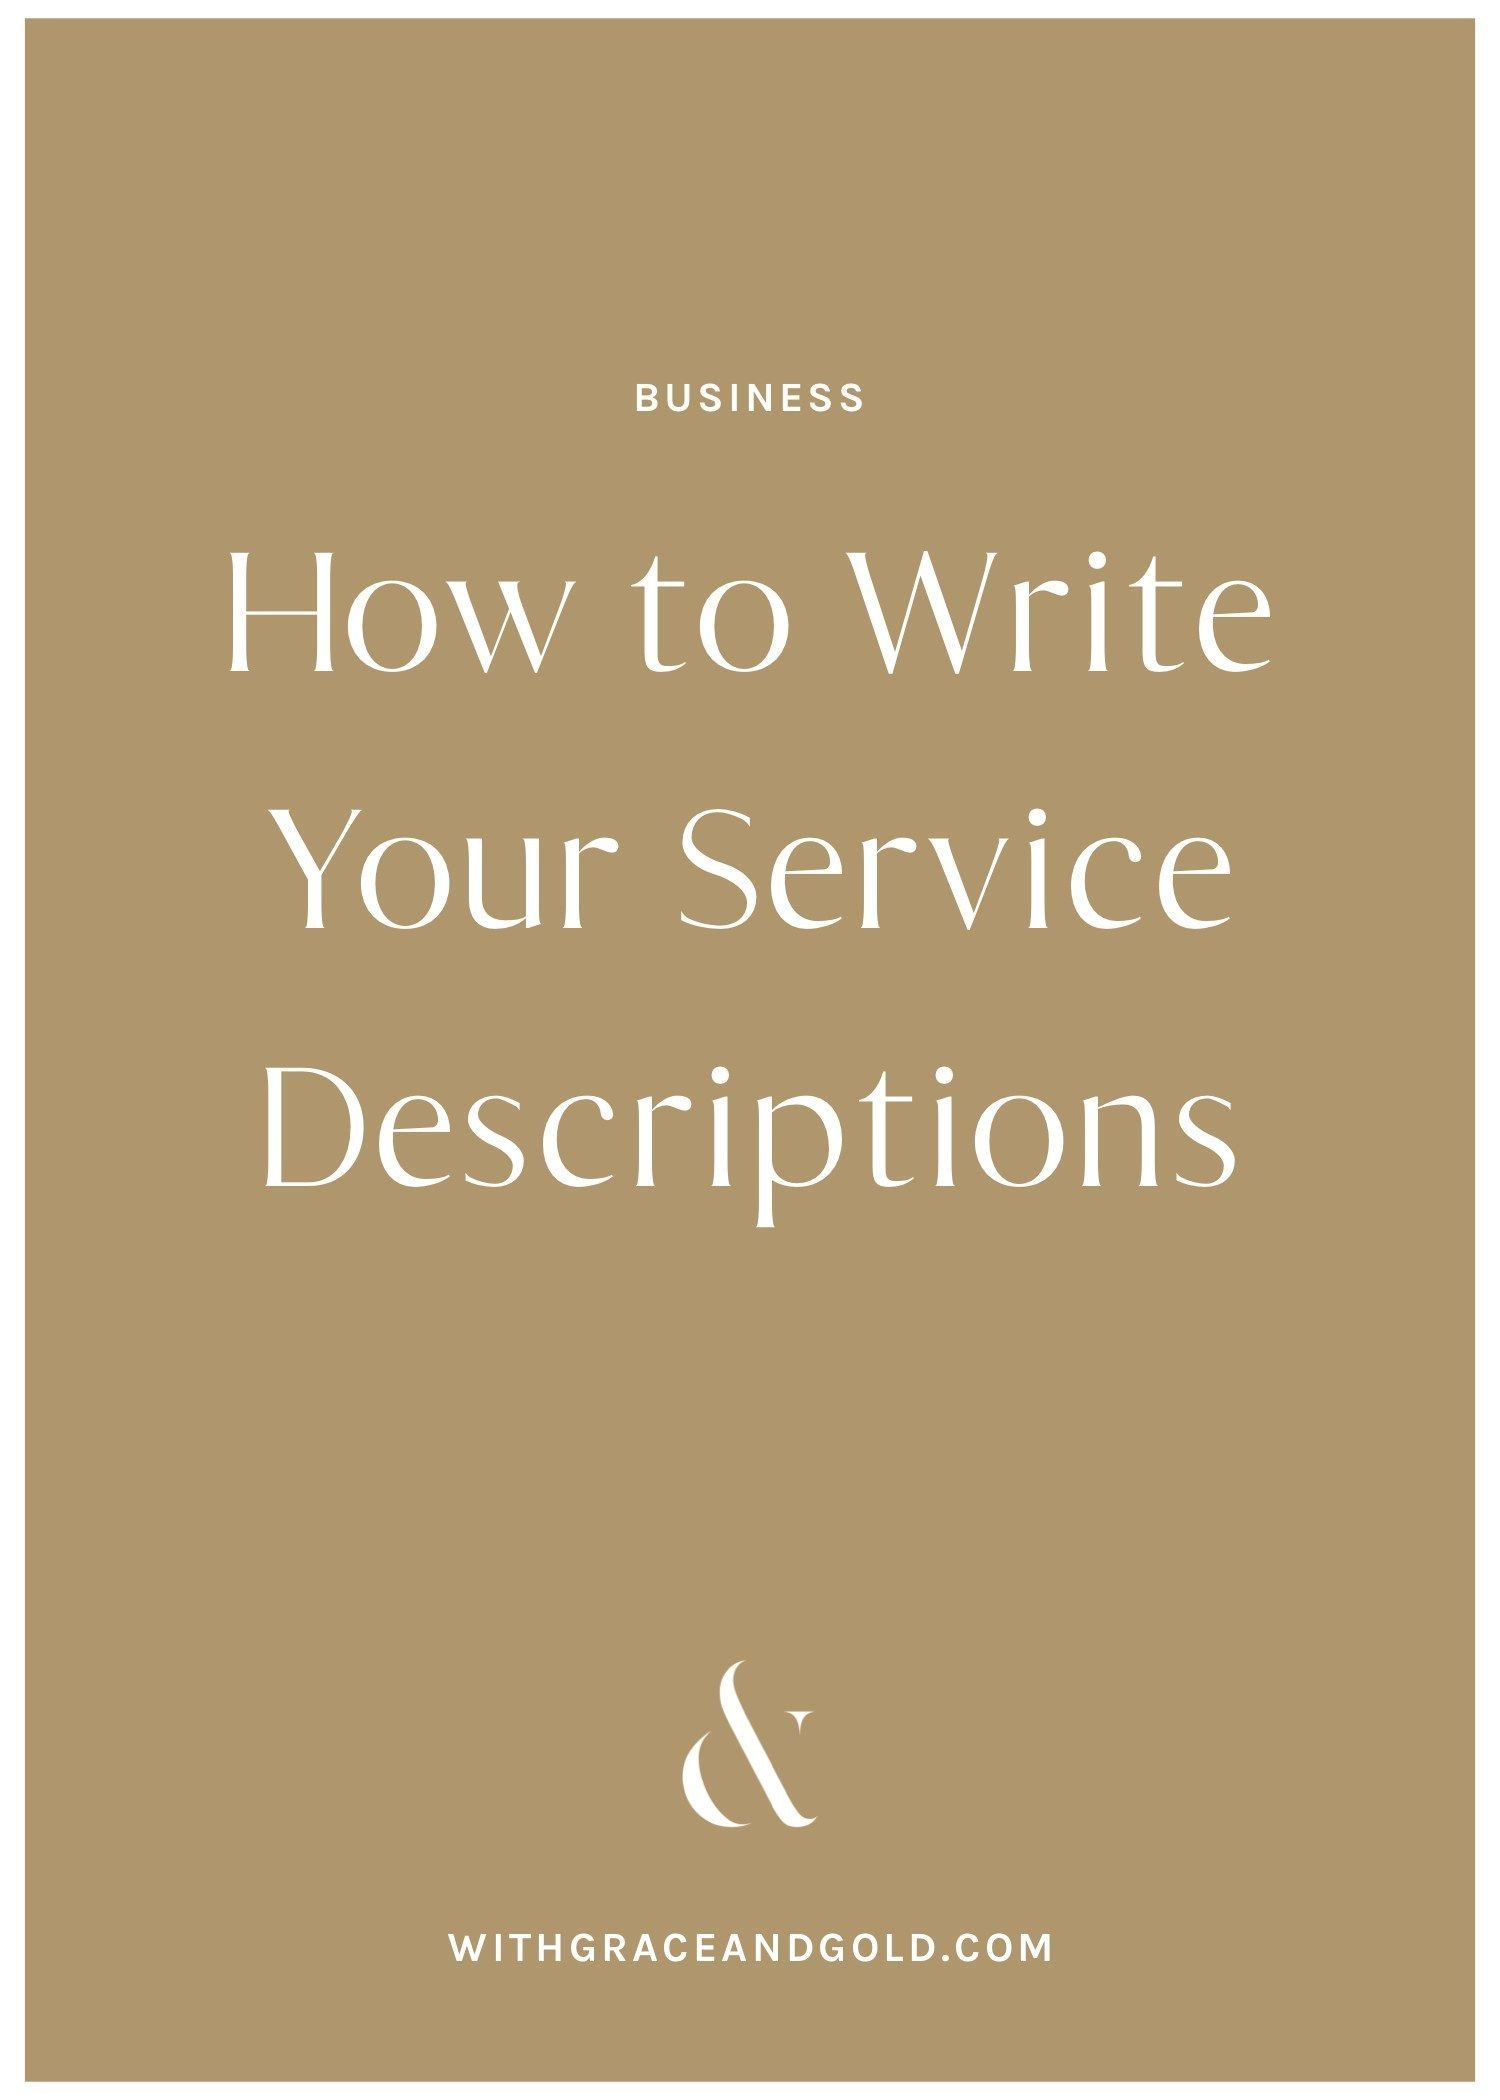 How to Write Your Service Descriptions by With Grace and Gold